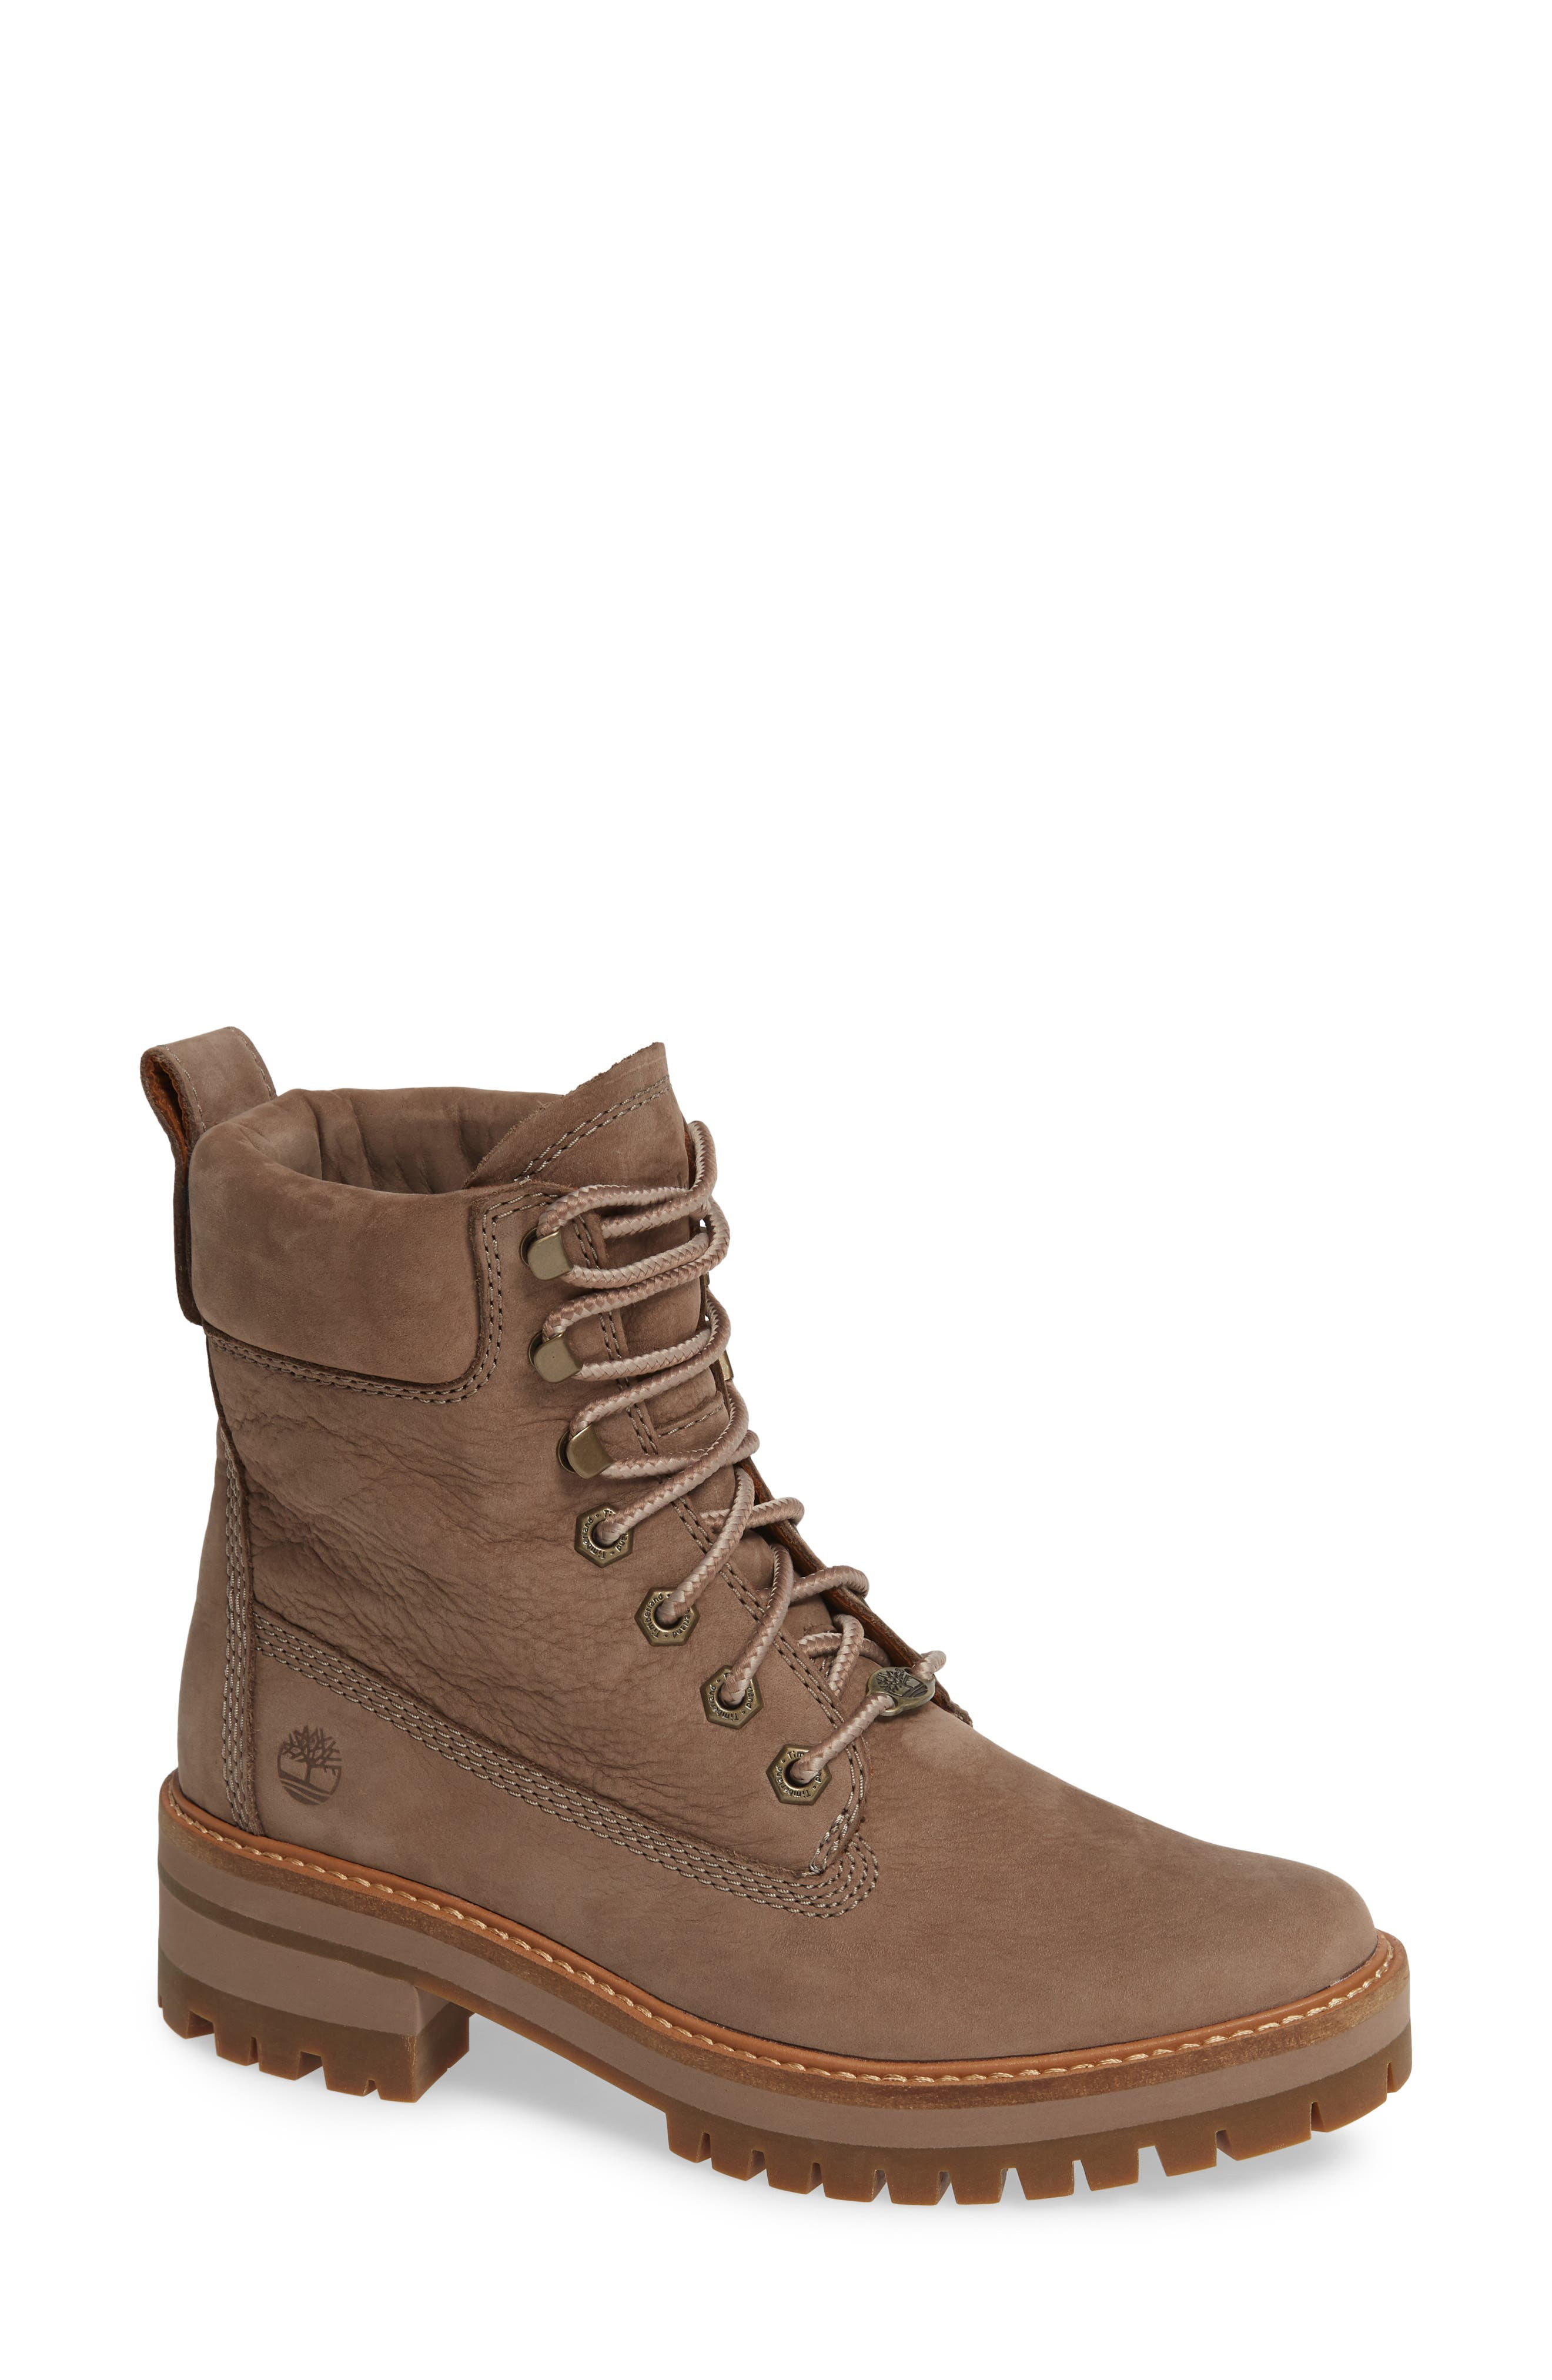 Courmayeur Valley Water Resistant Hiking Boot,                             Main thumbnail 1, color,                             TAUPE GREY NUBUCK